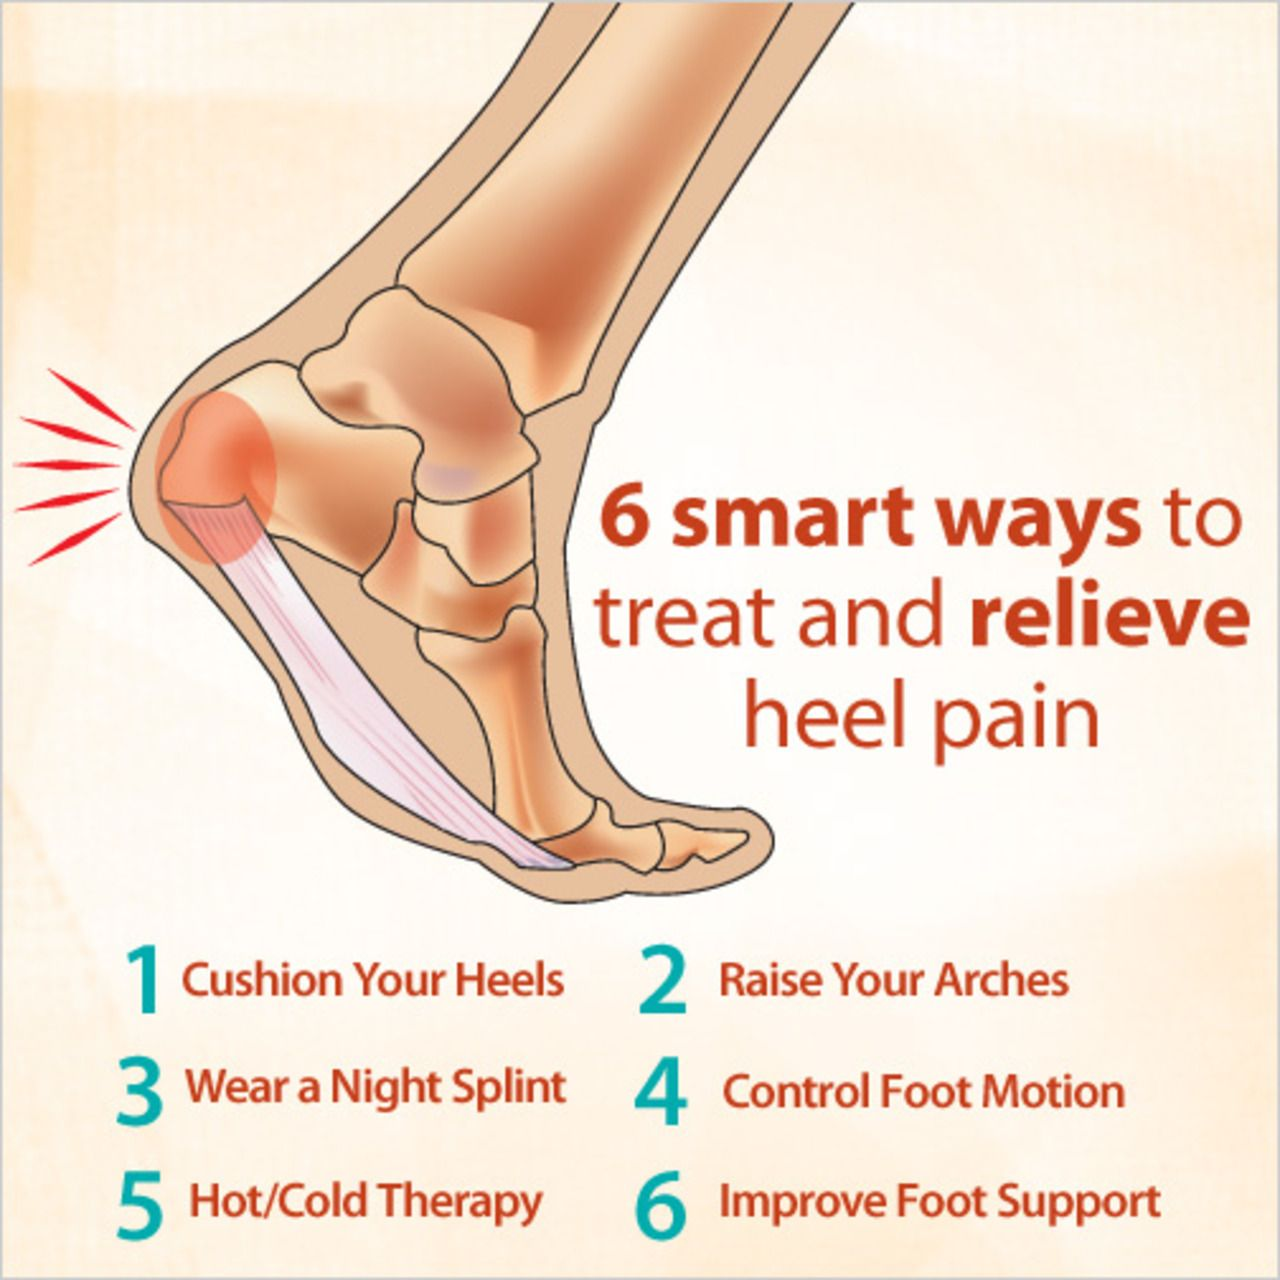 Do you suffer from heel pain or plantar fasciitis? Check out 6 tips that can